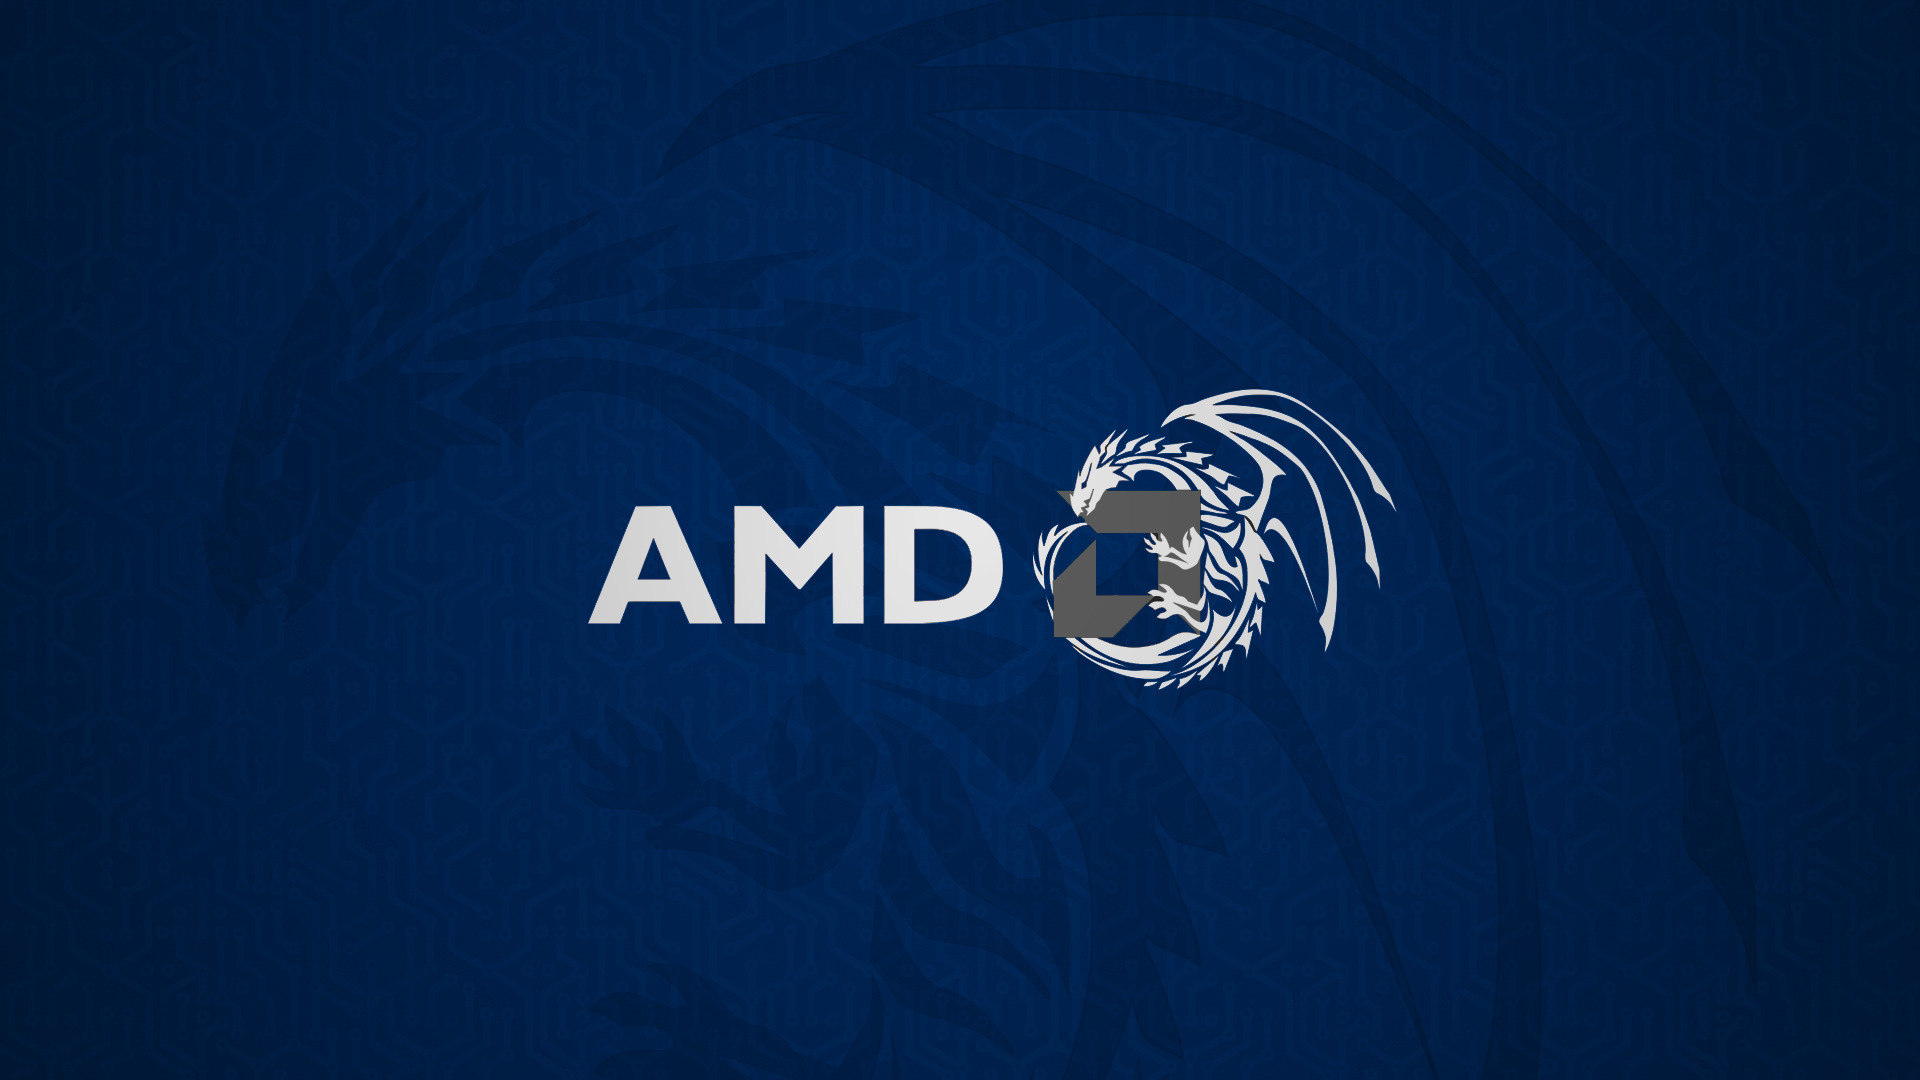 1920x1080 amd blue dragon laptop full hd 1080p hd 4k wallpapers